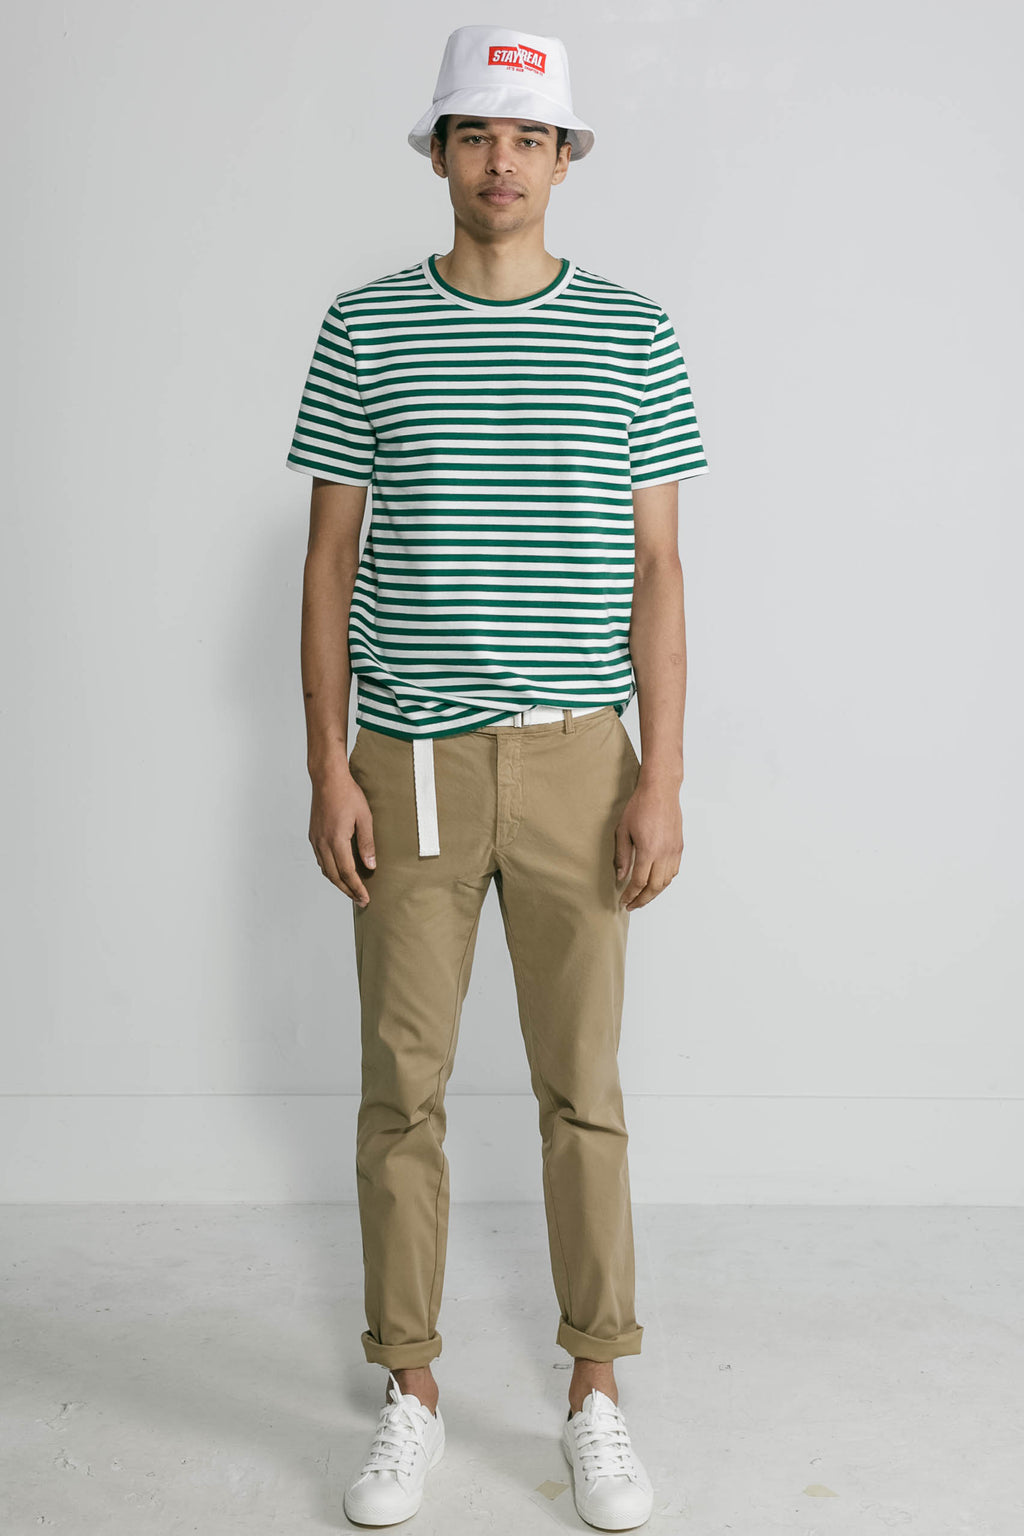 Marine Stripe Crew in White and Green 001